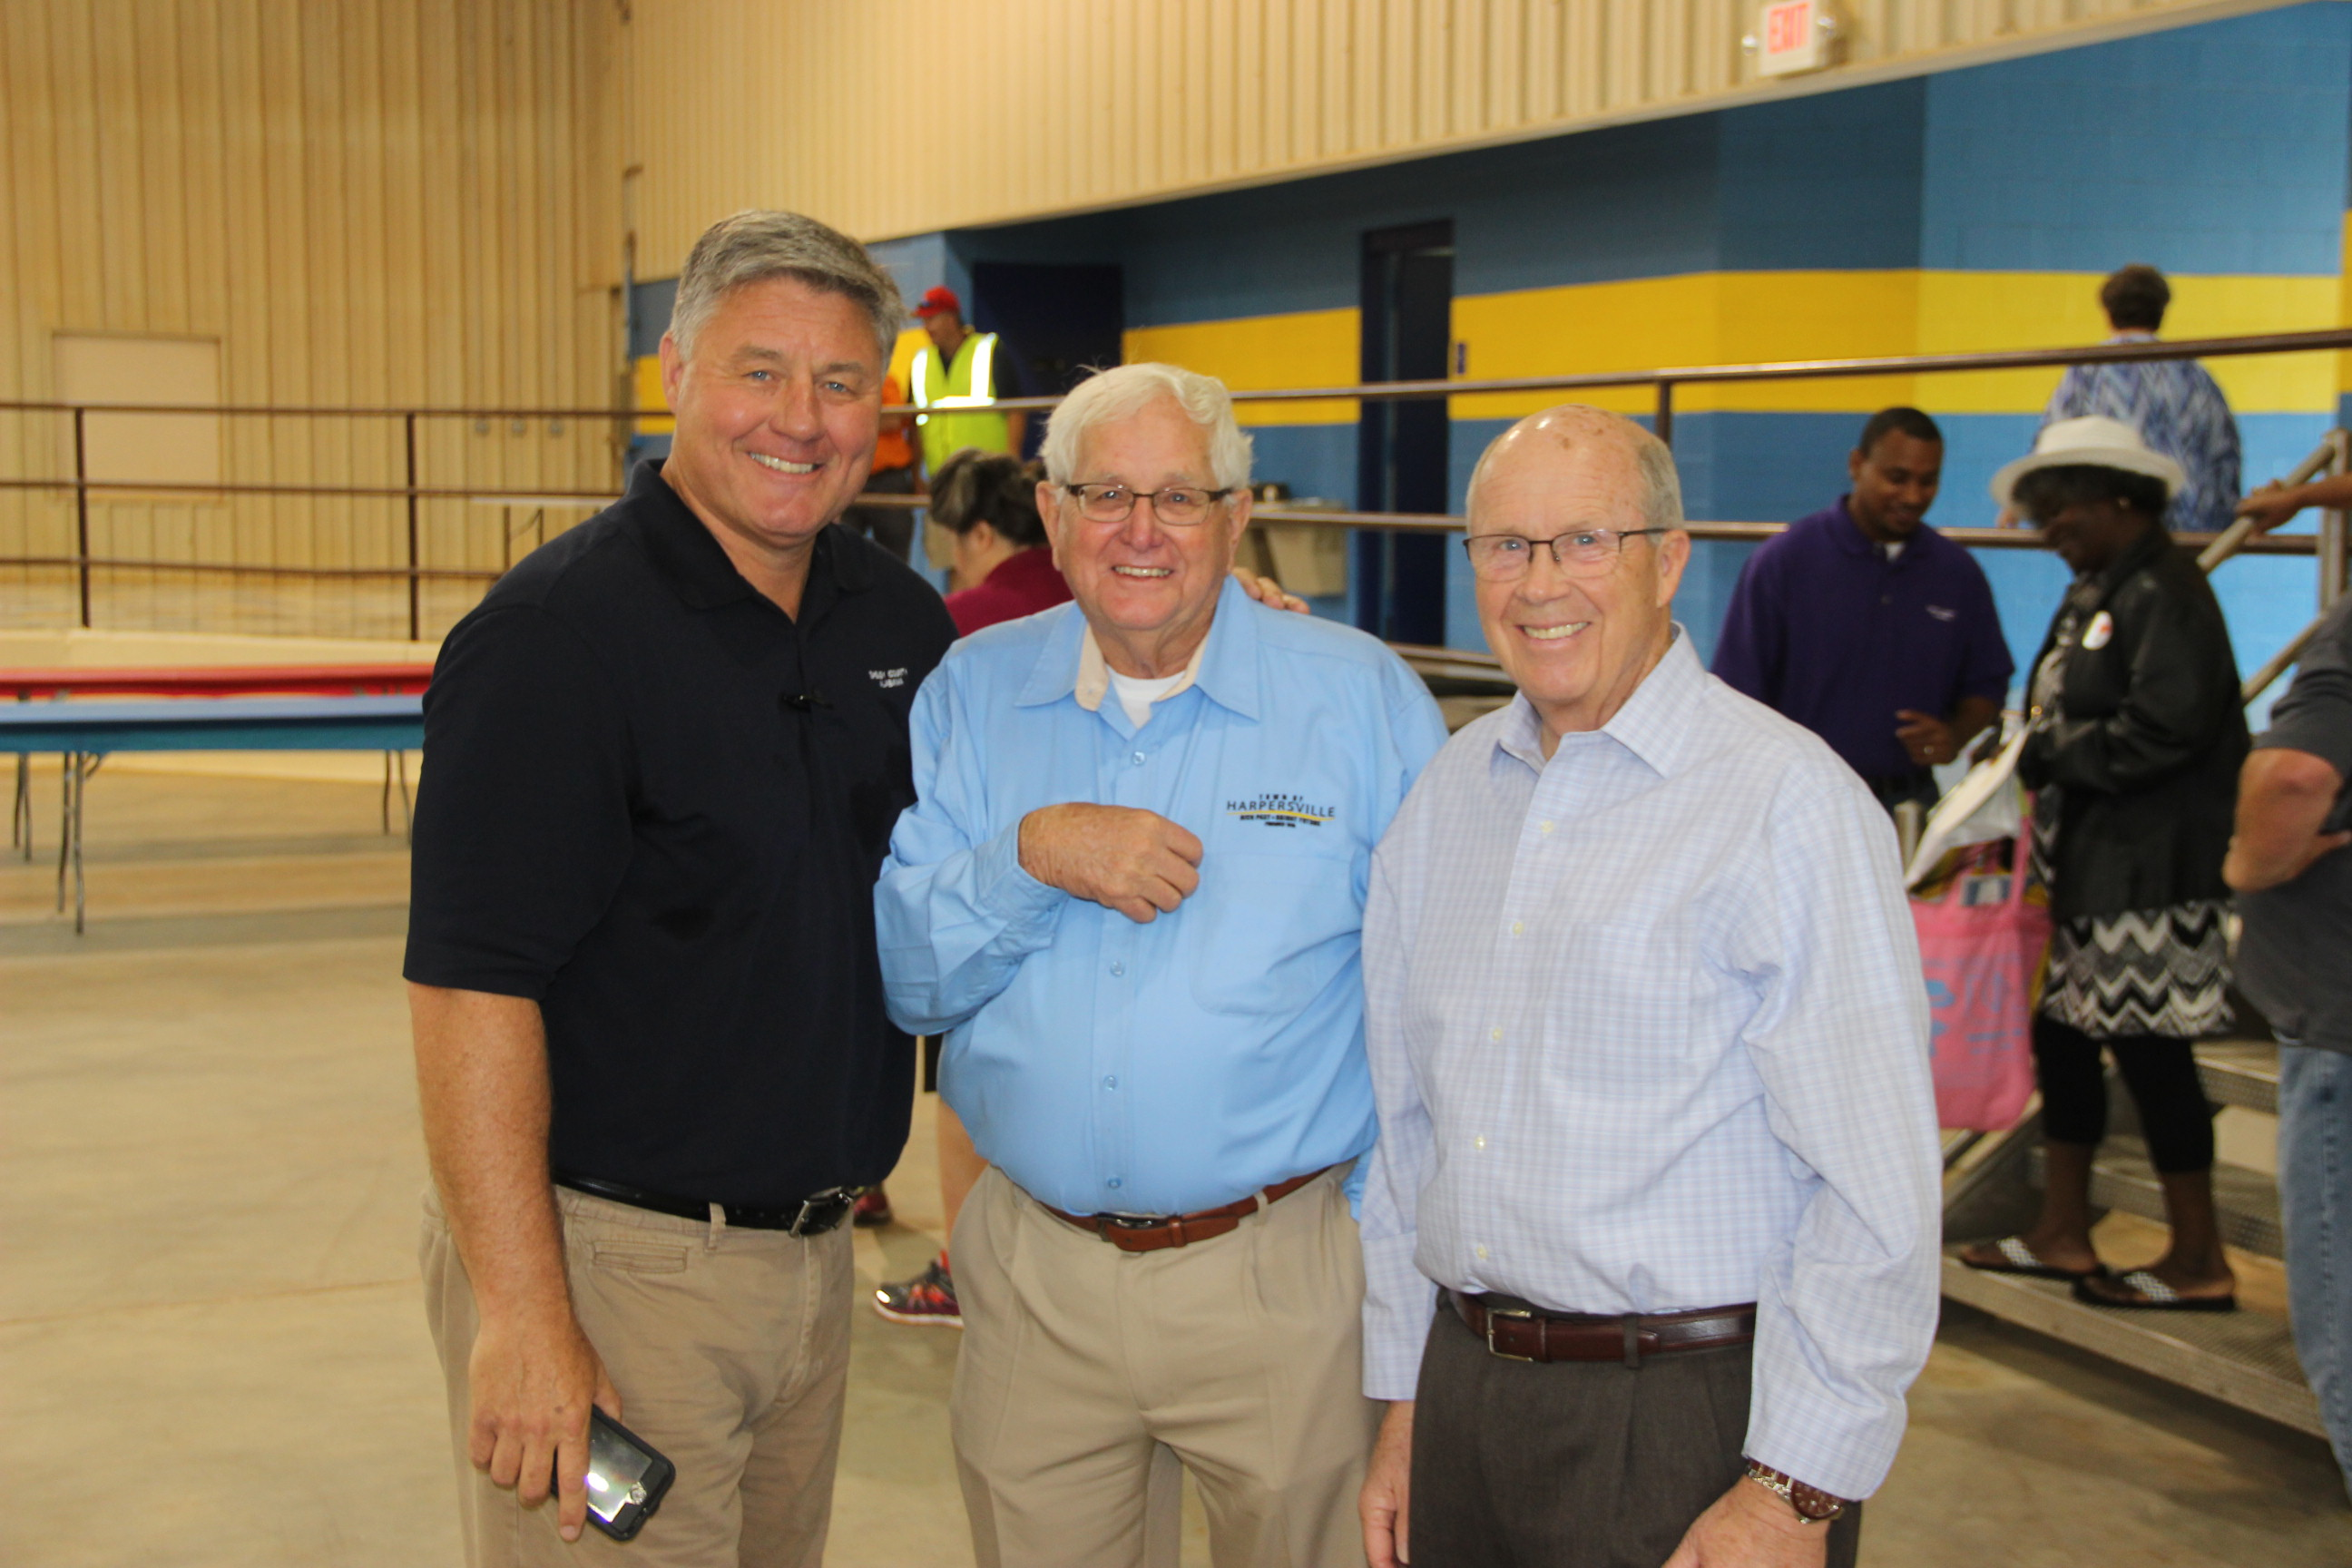 Image of Alex Dudchock, Don Greene, and Don Armstrong at the 2017 Senior Picnic